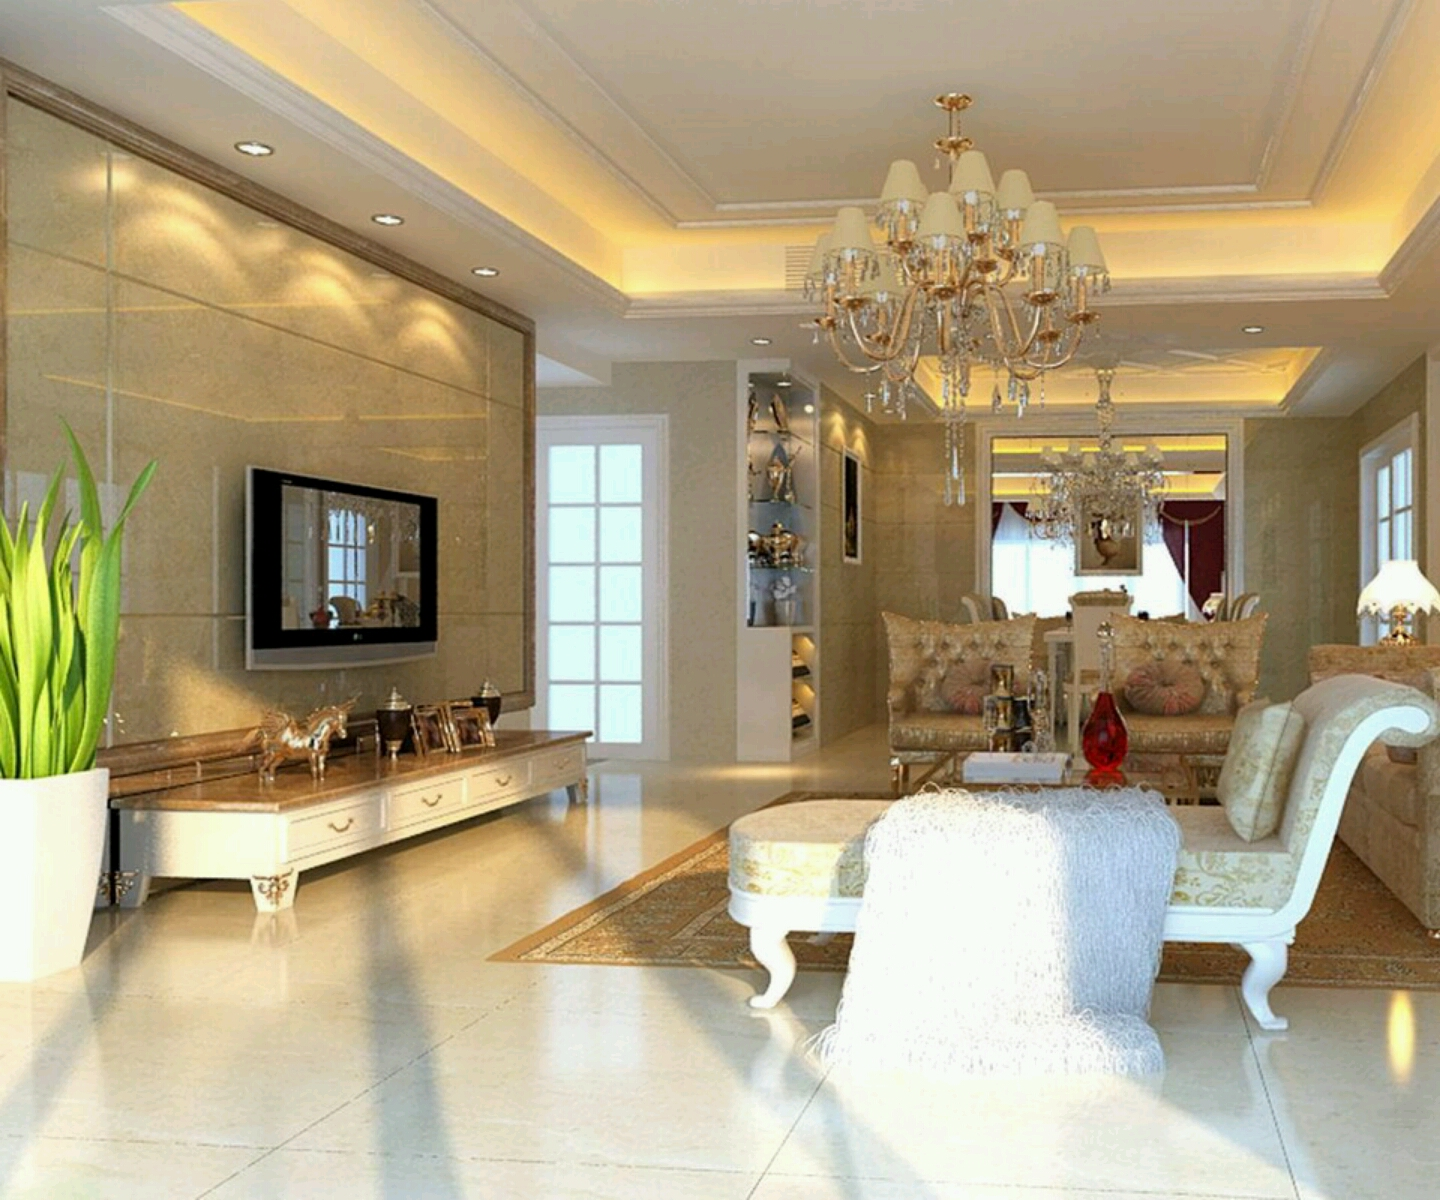 Home decor 2012 luxury homes interior decoration living room designs ideas - Living interior design ...